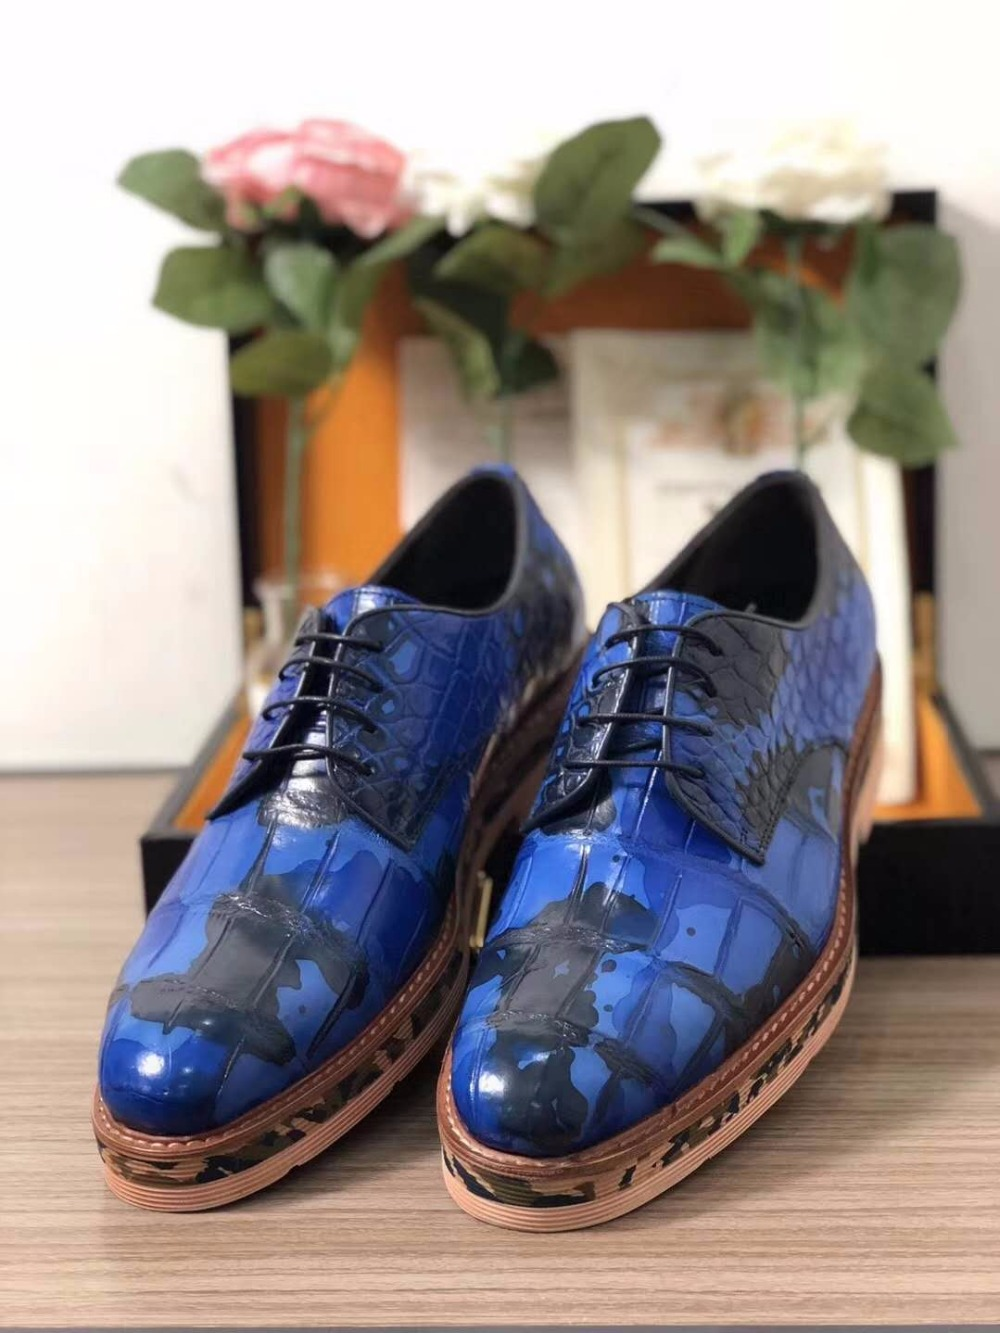 2018 Genuine real genuine crocodile belly skin men business shoe Camouflage blue color top quality fast free shipping 2018 genuine real genuine python skin men shoe top quality snake skin handmade men shoe black blue color free shipping